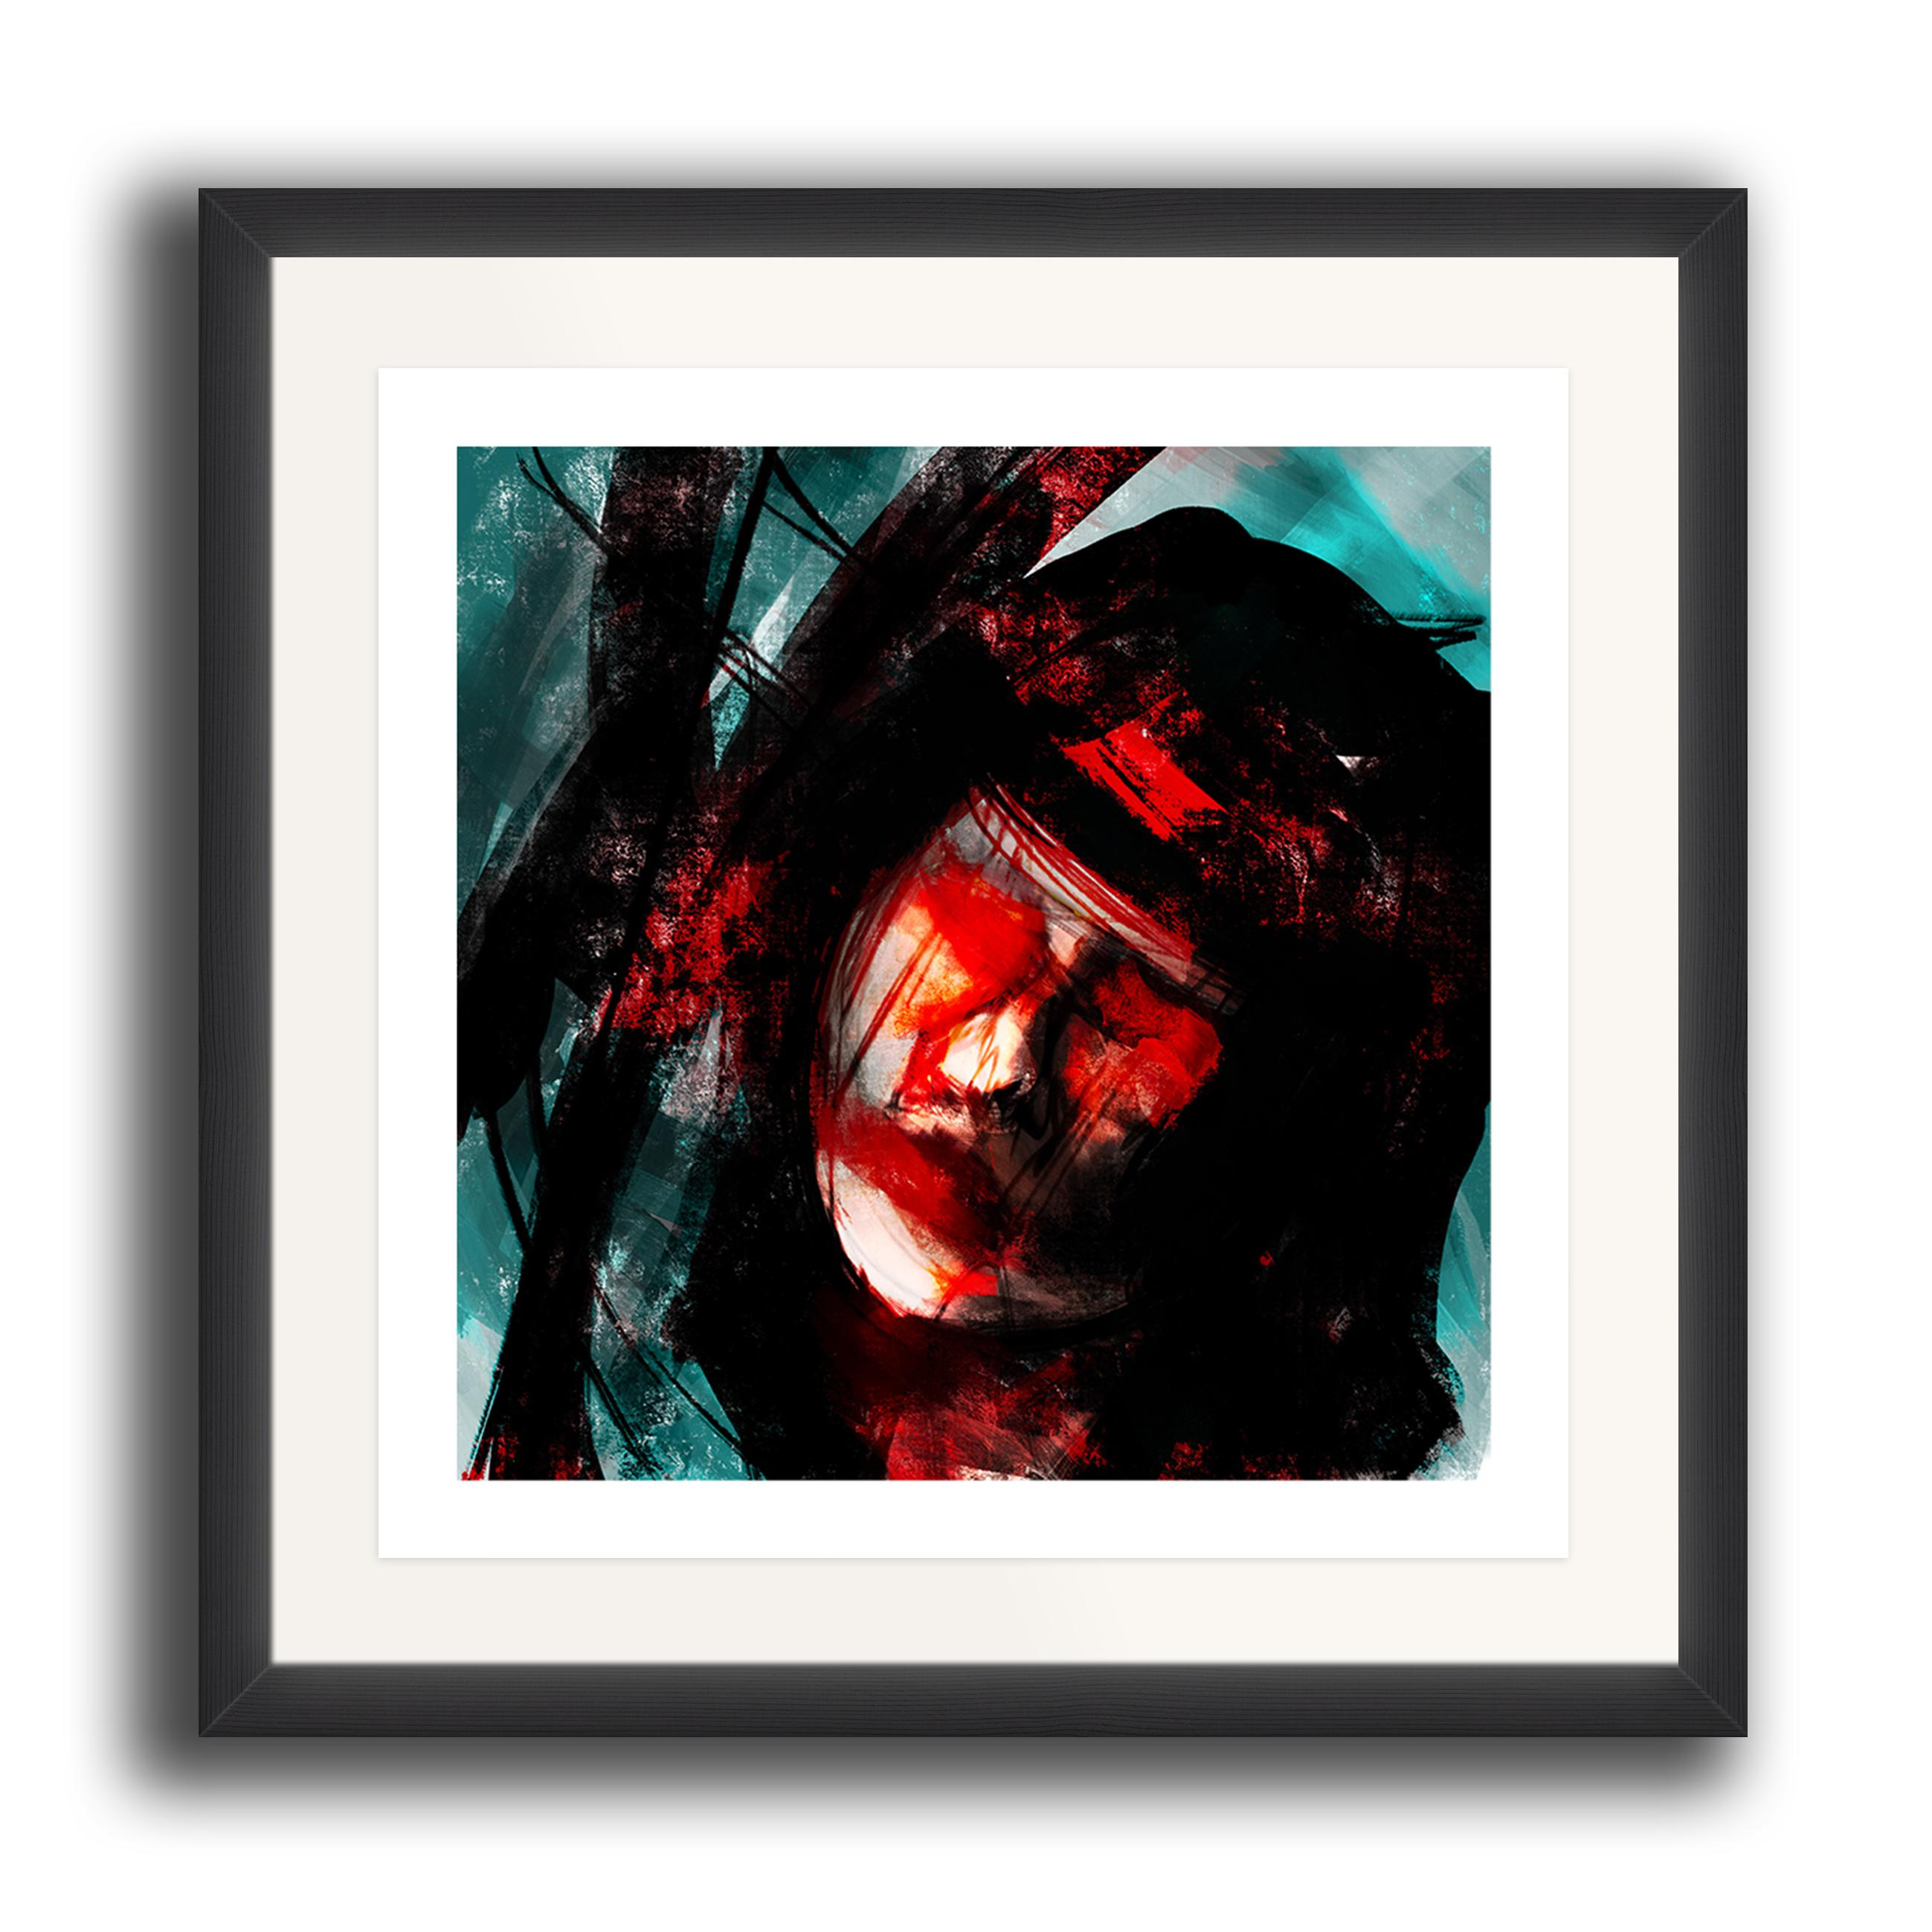 An abstract digital painting by Lily Bourne printed on eco fine art paper titled Tuned showing a female face amongst turquoise, black and red lines. The image is set in a black coloured picture frame.